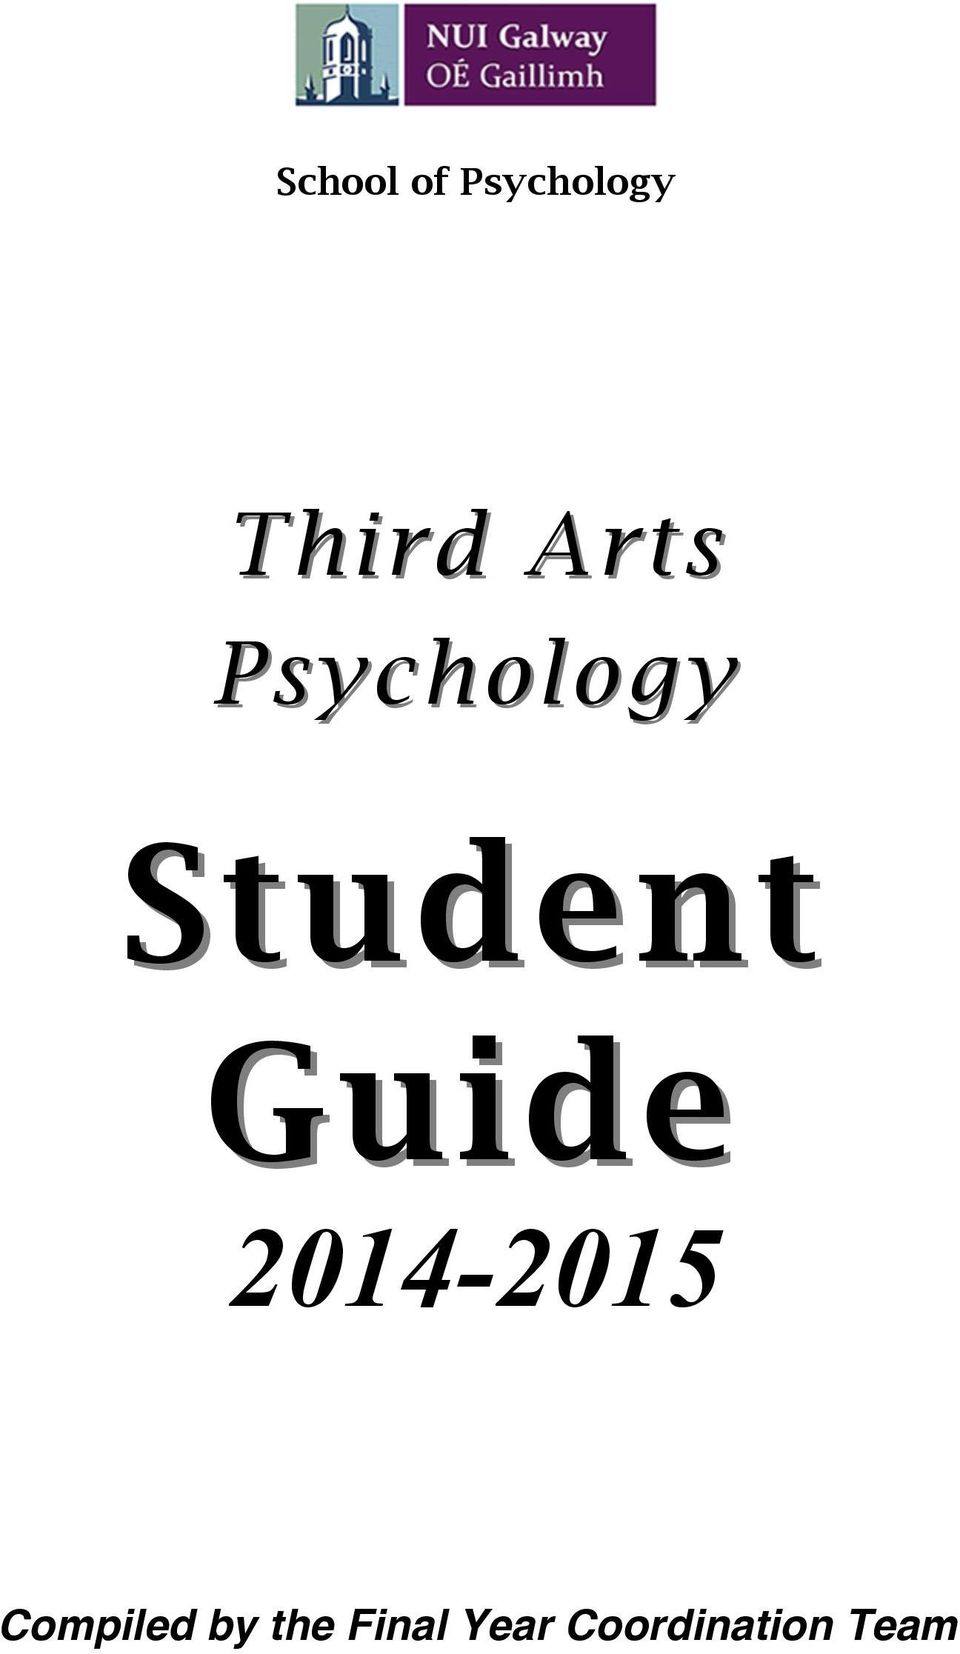 Guide 2014-2015 Compiled by